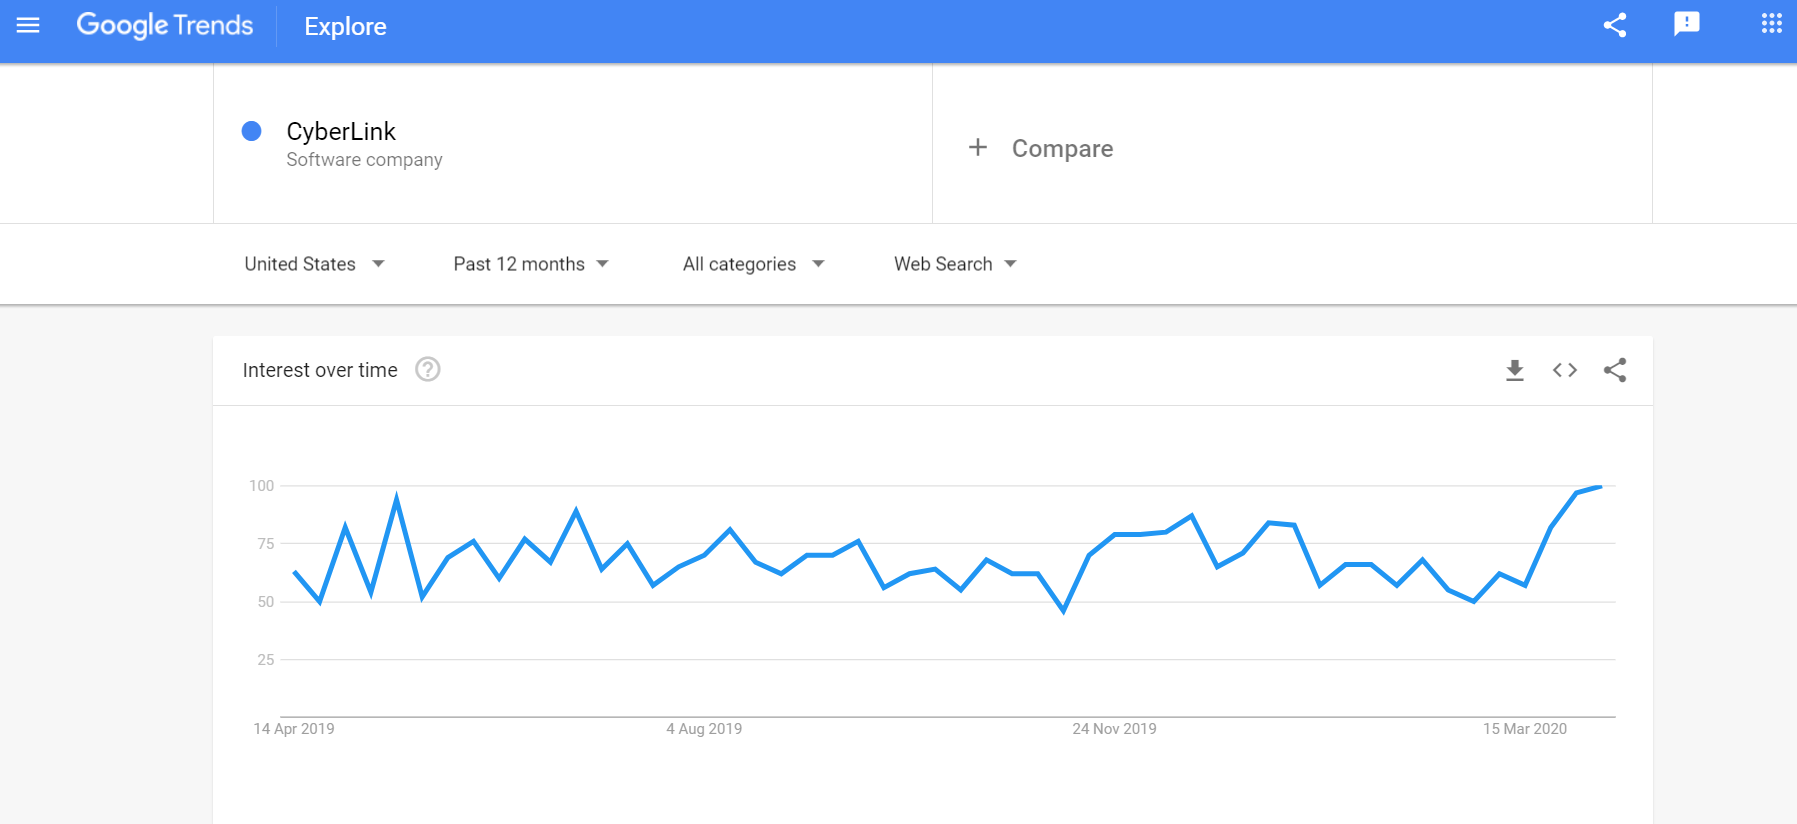 CyberLink search popularity Google Trends